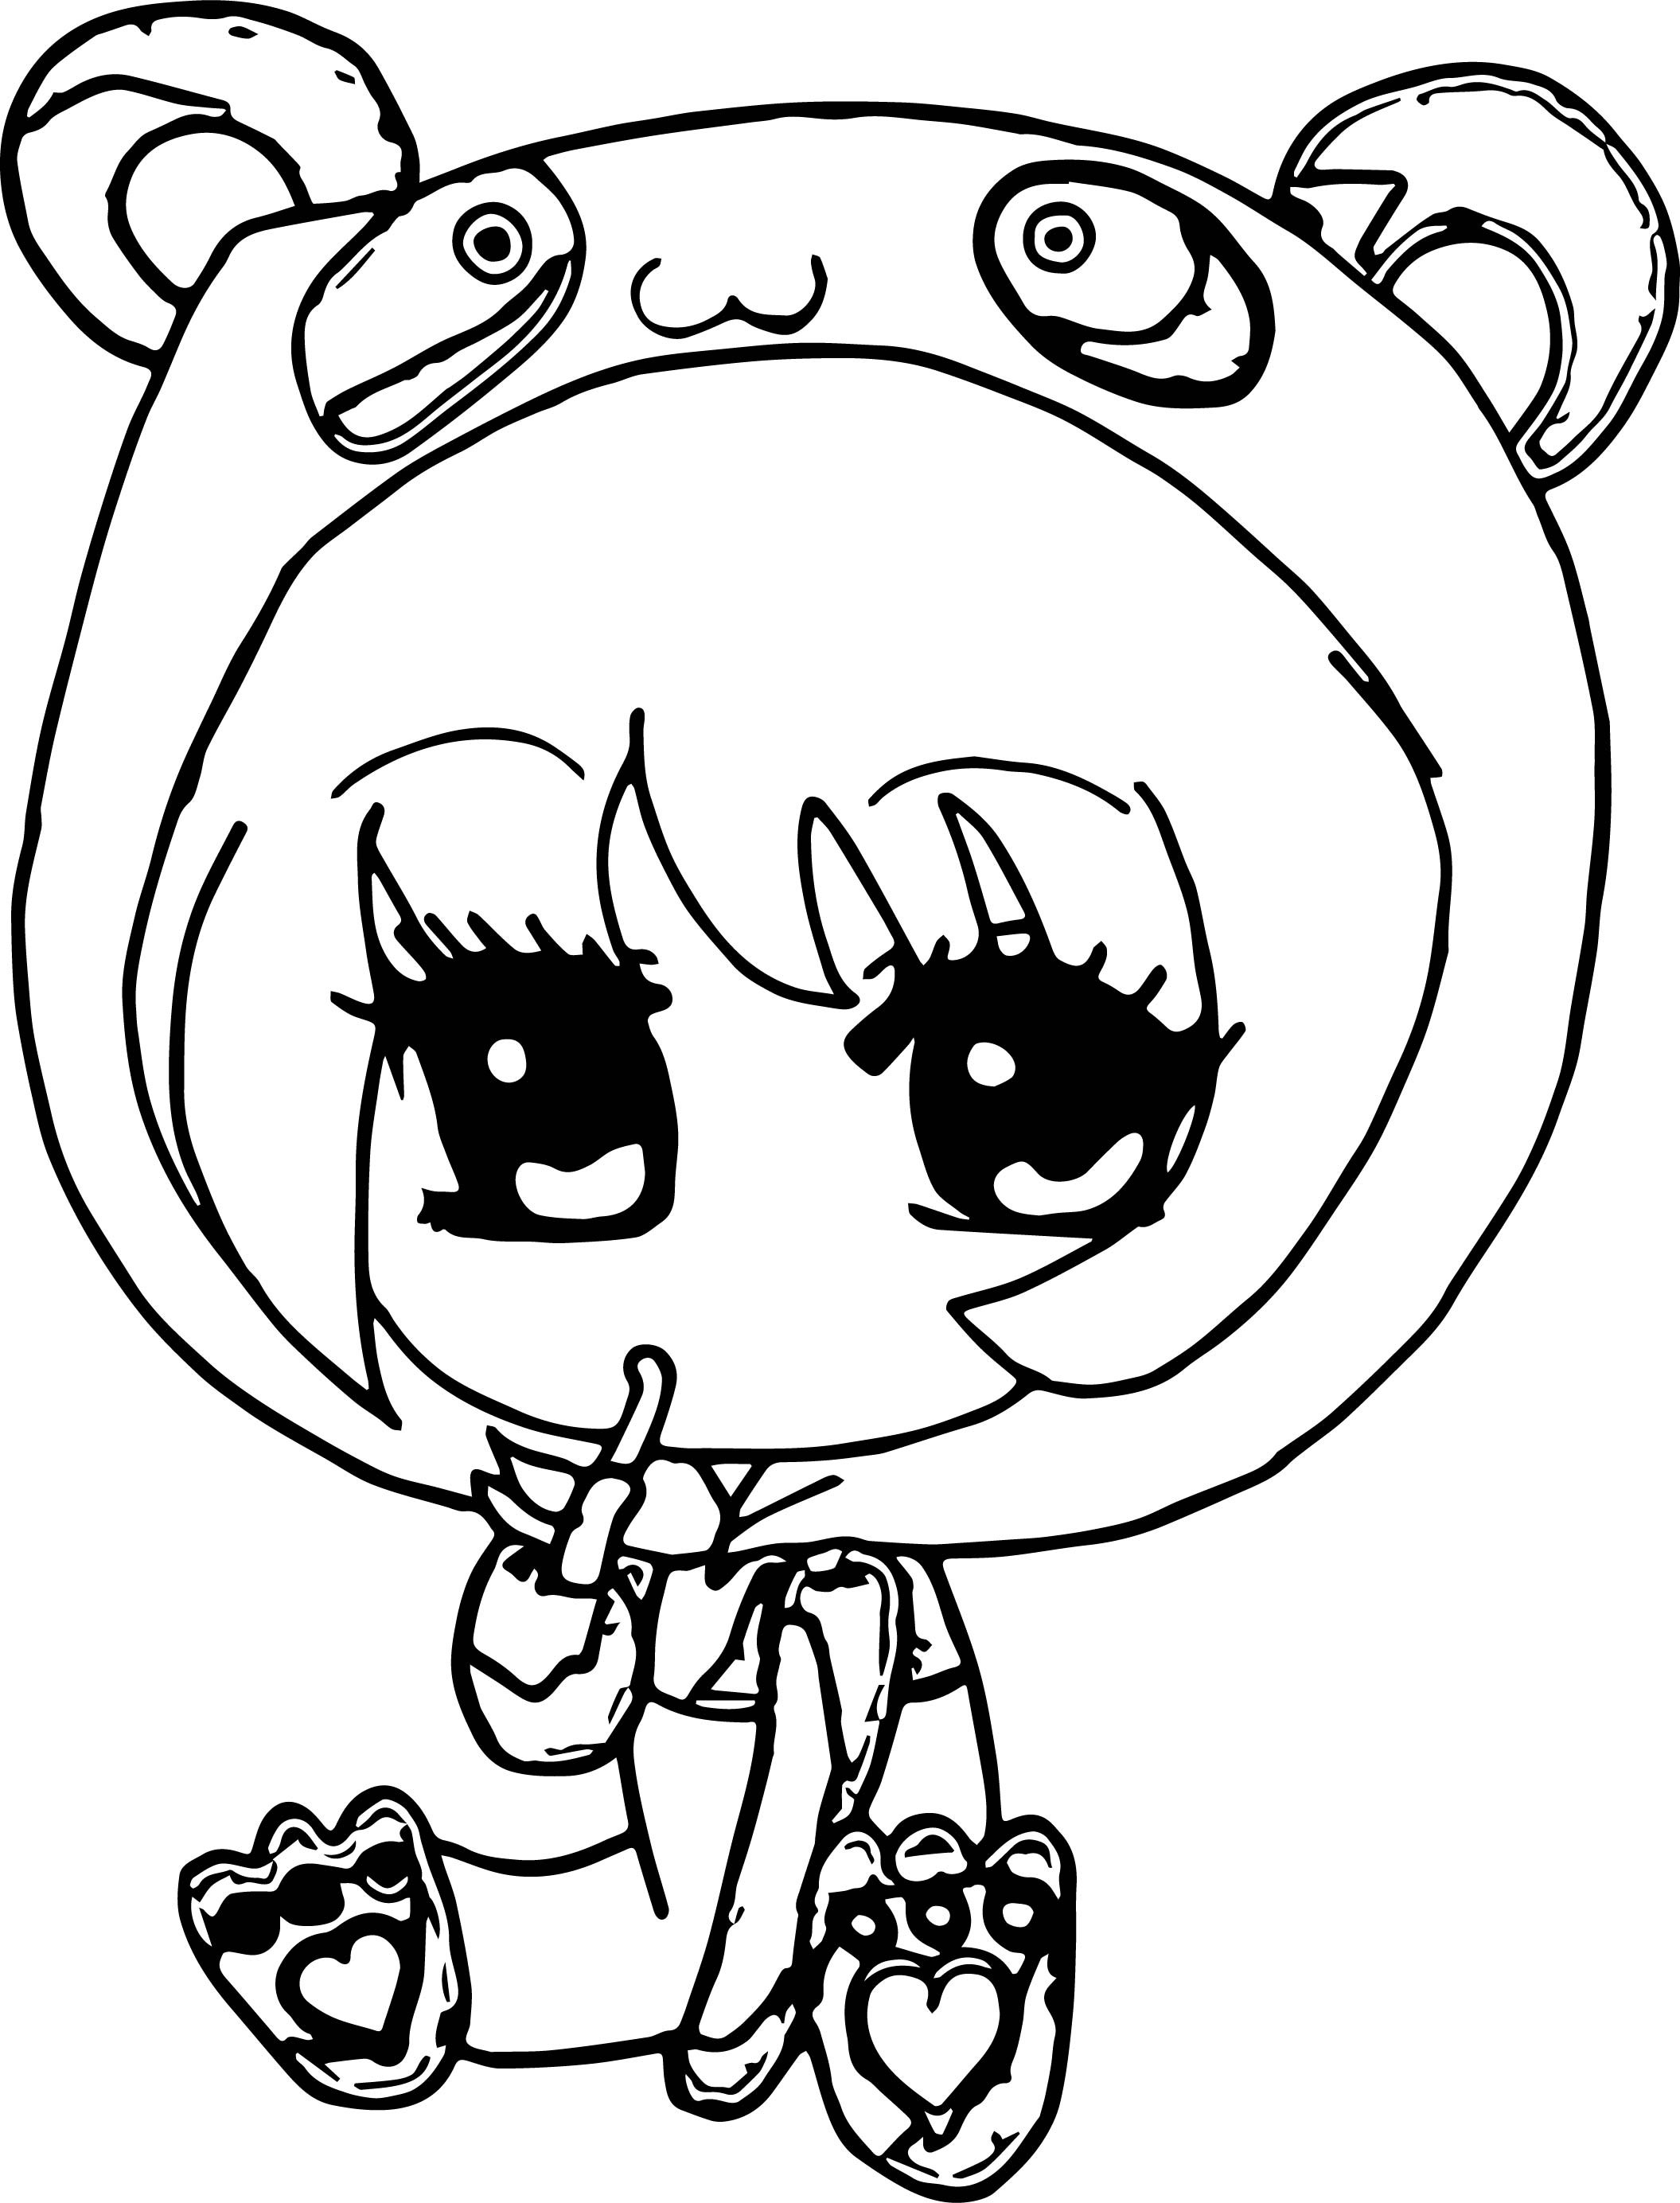 chibi girl coloring pages vermillia chibi lineart commission by yampuff on deviantart chibi coloring pages girl